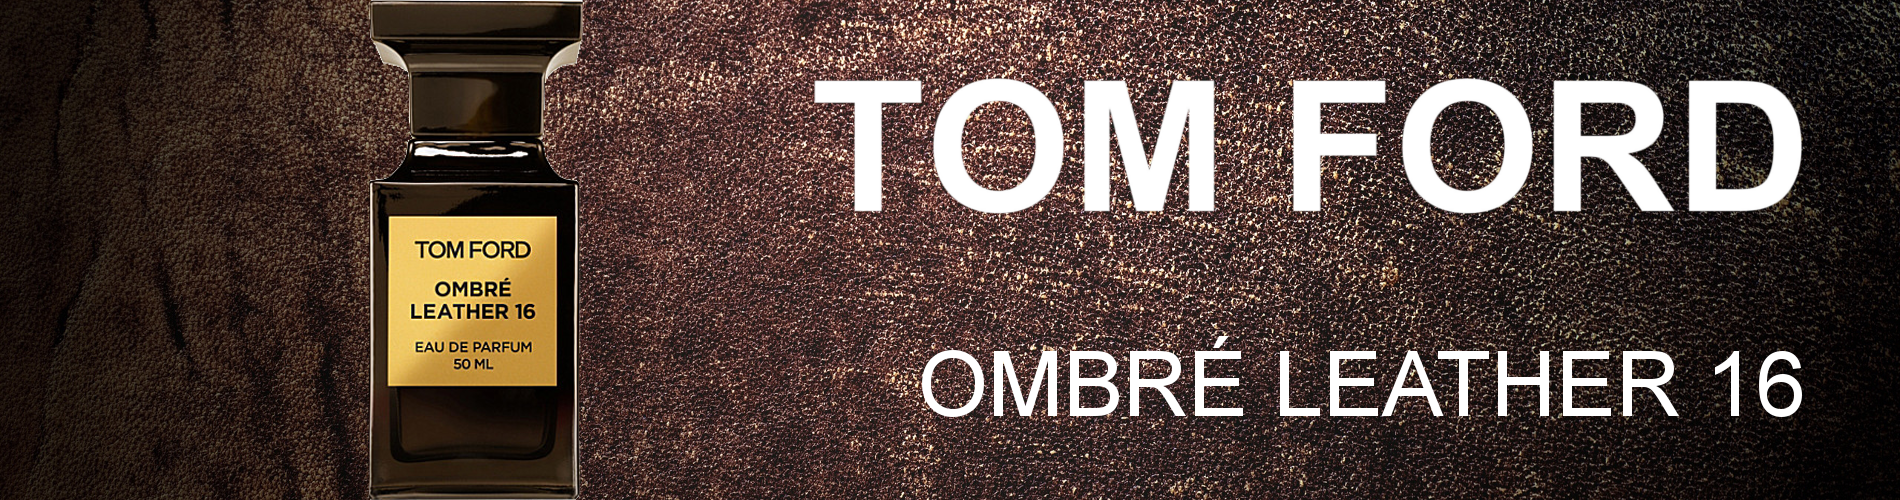 New Release Tom Ford Ombré Leather 16